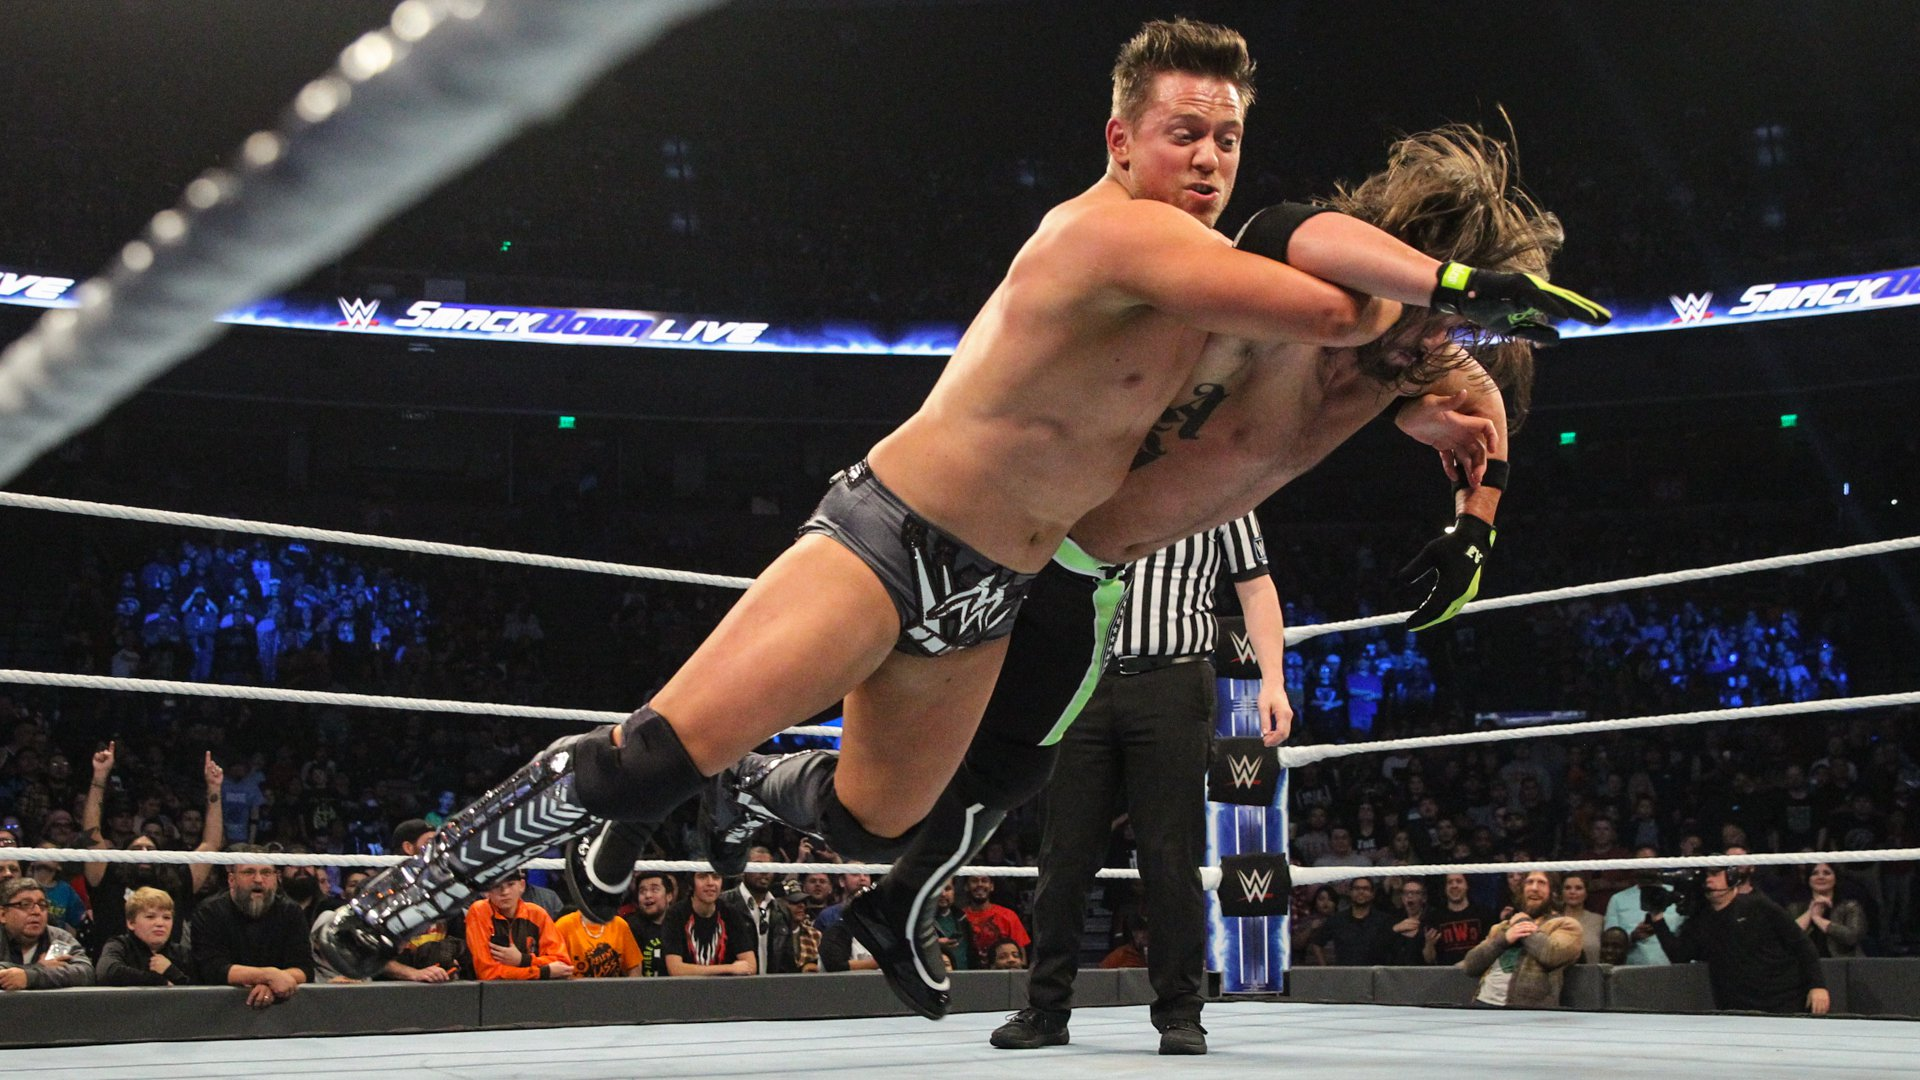 ... and Miz drops The Phenomenal One with the Skull-Crushing Finale!